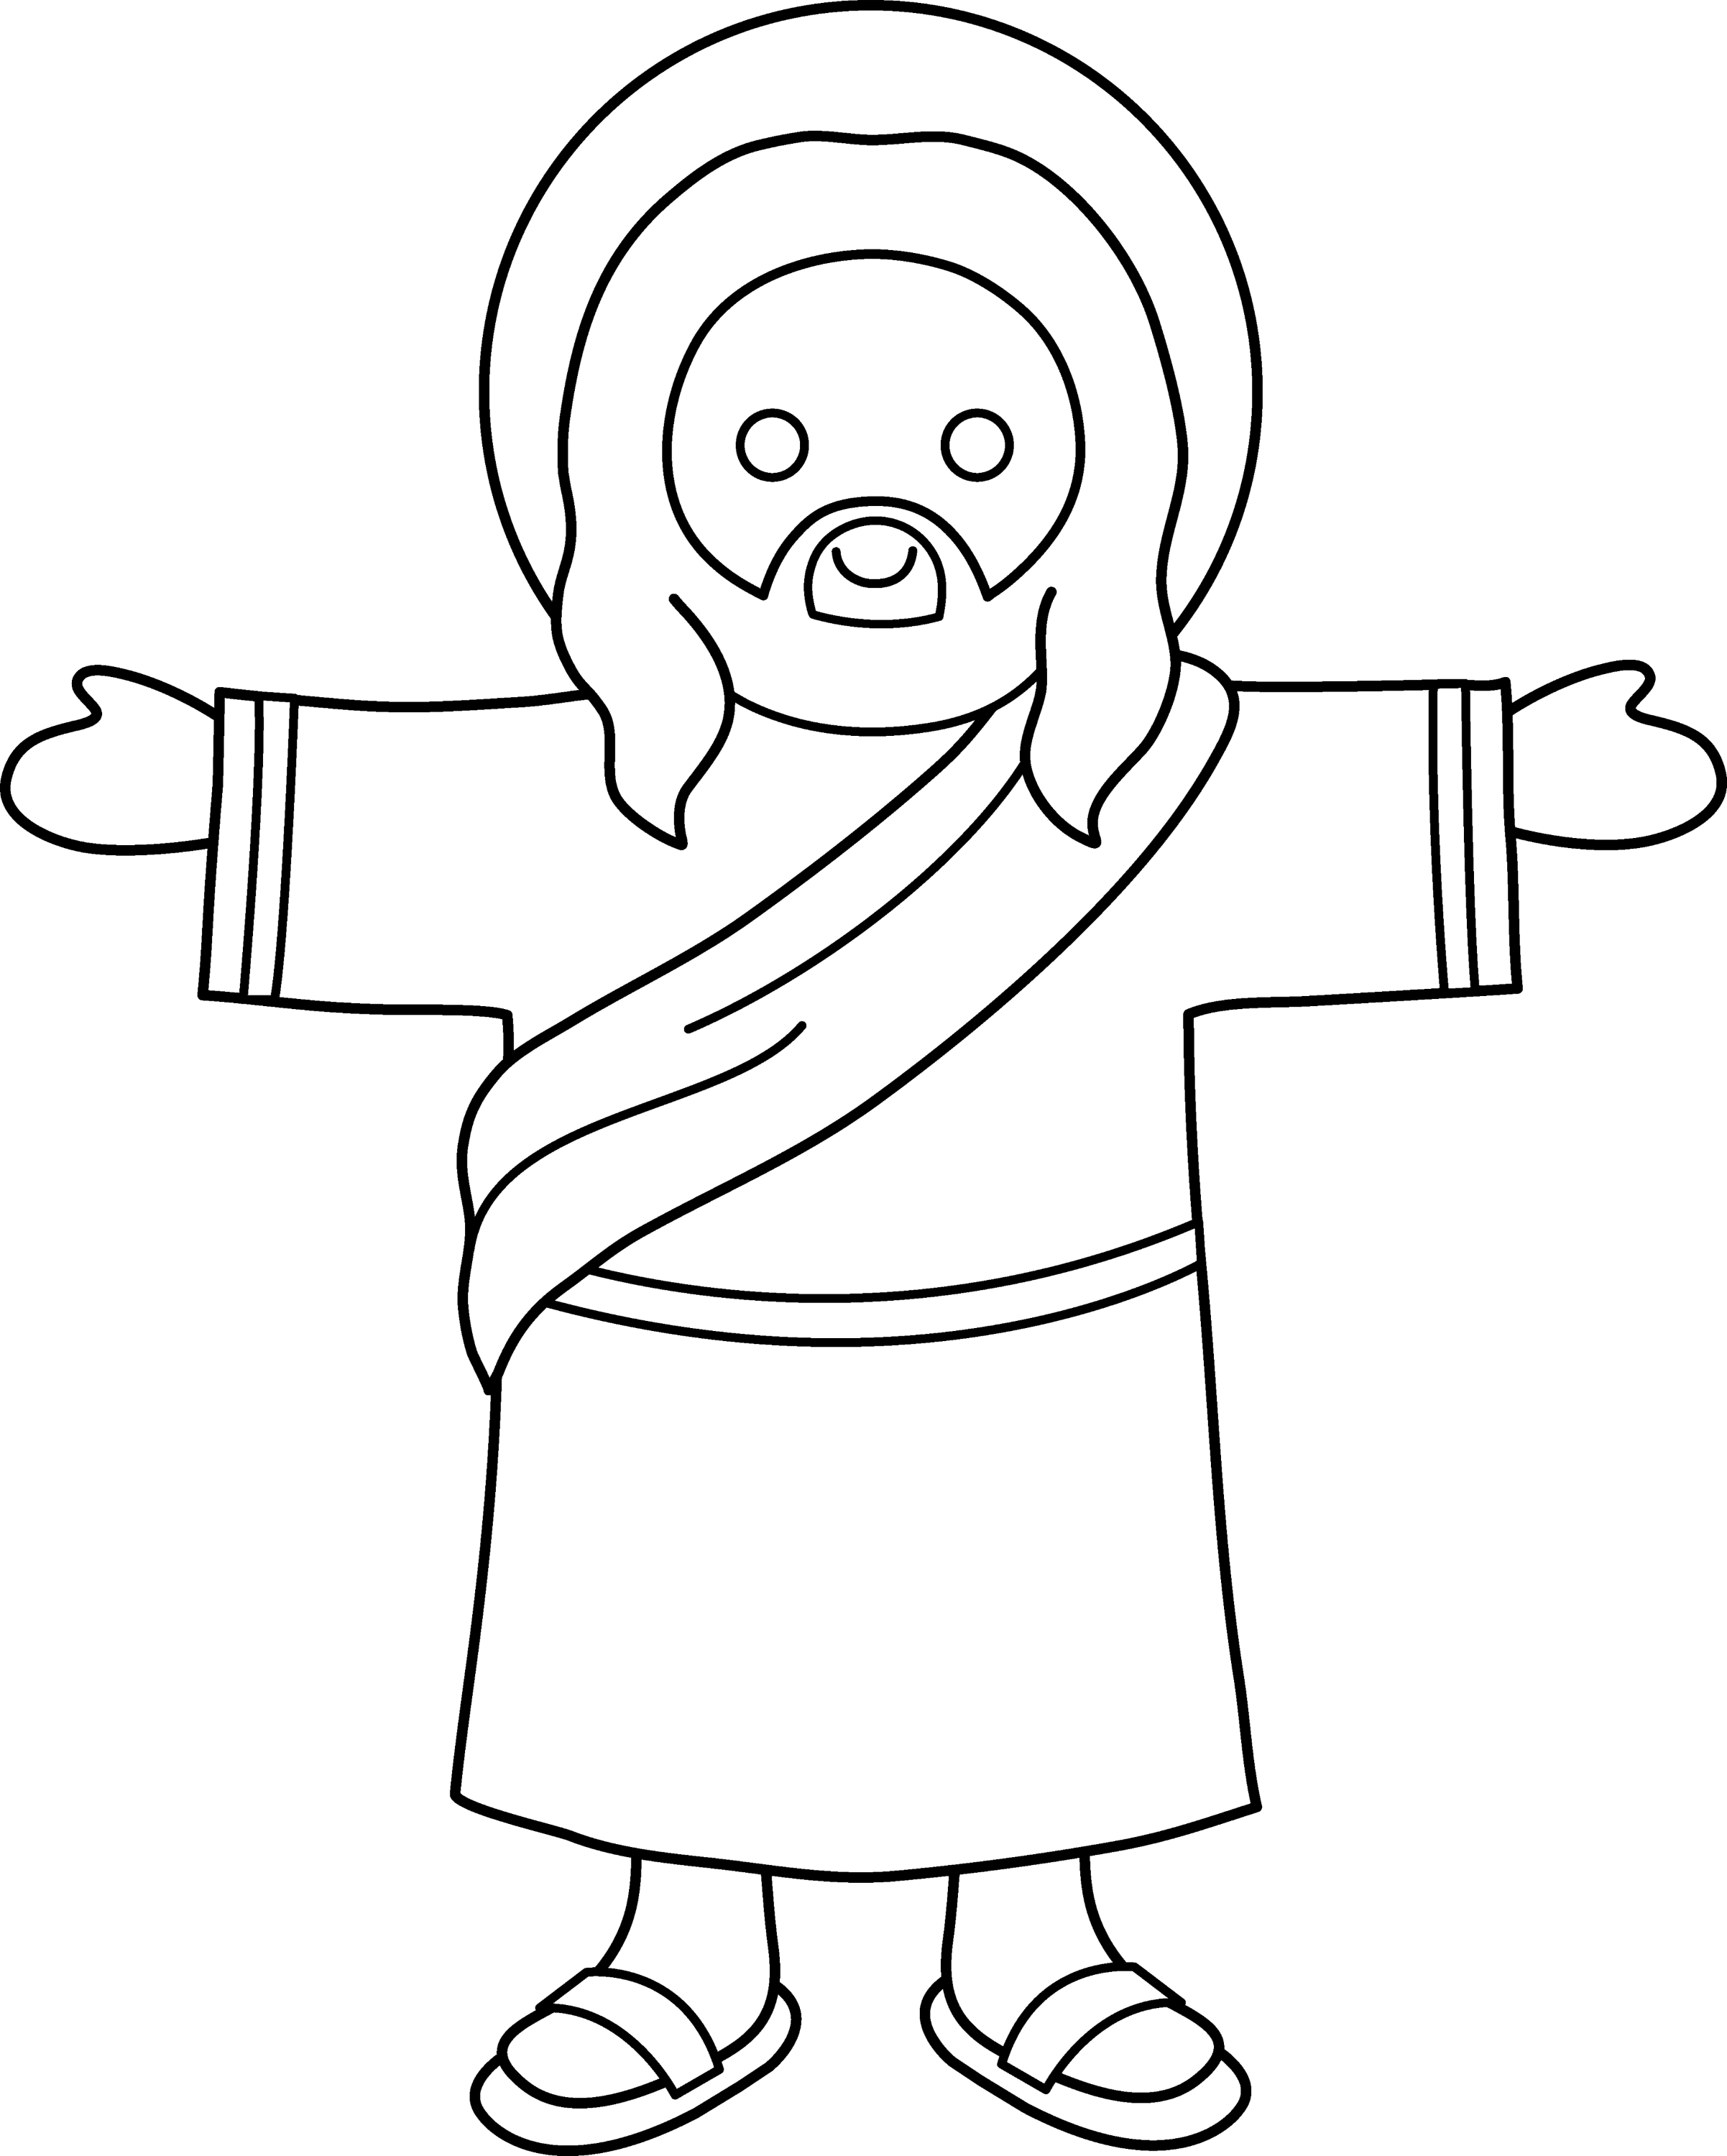 coloring pictures jesus baby jesus coloring pages best coloring pages for kids jesus pictures coloring